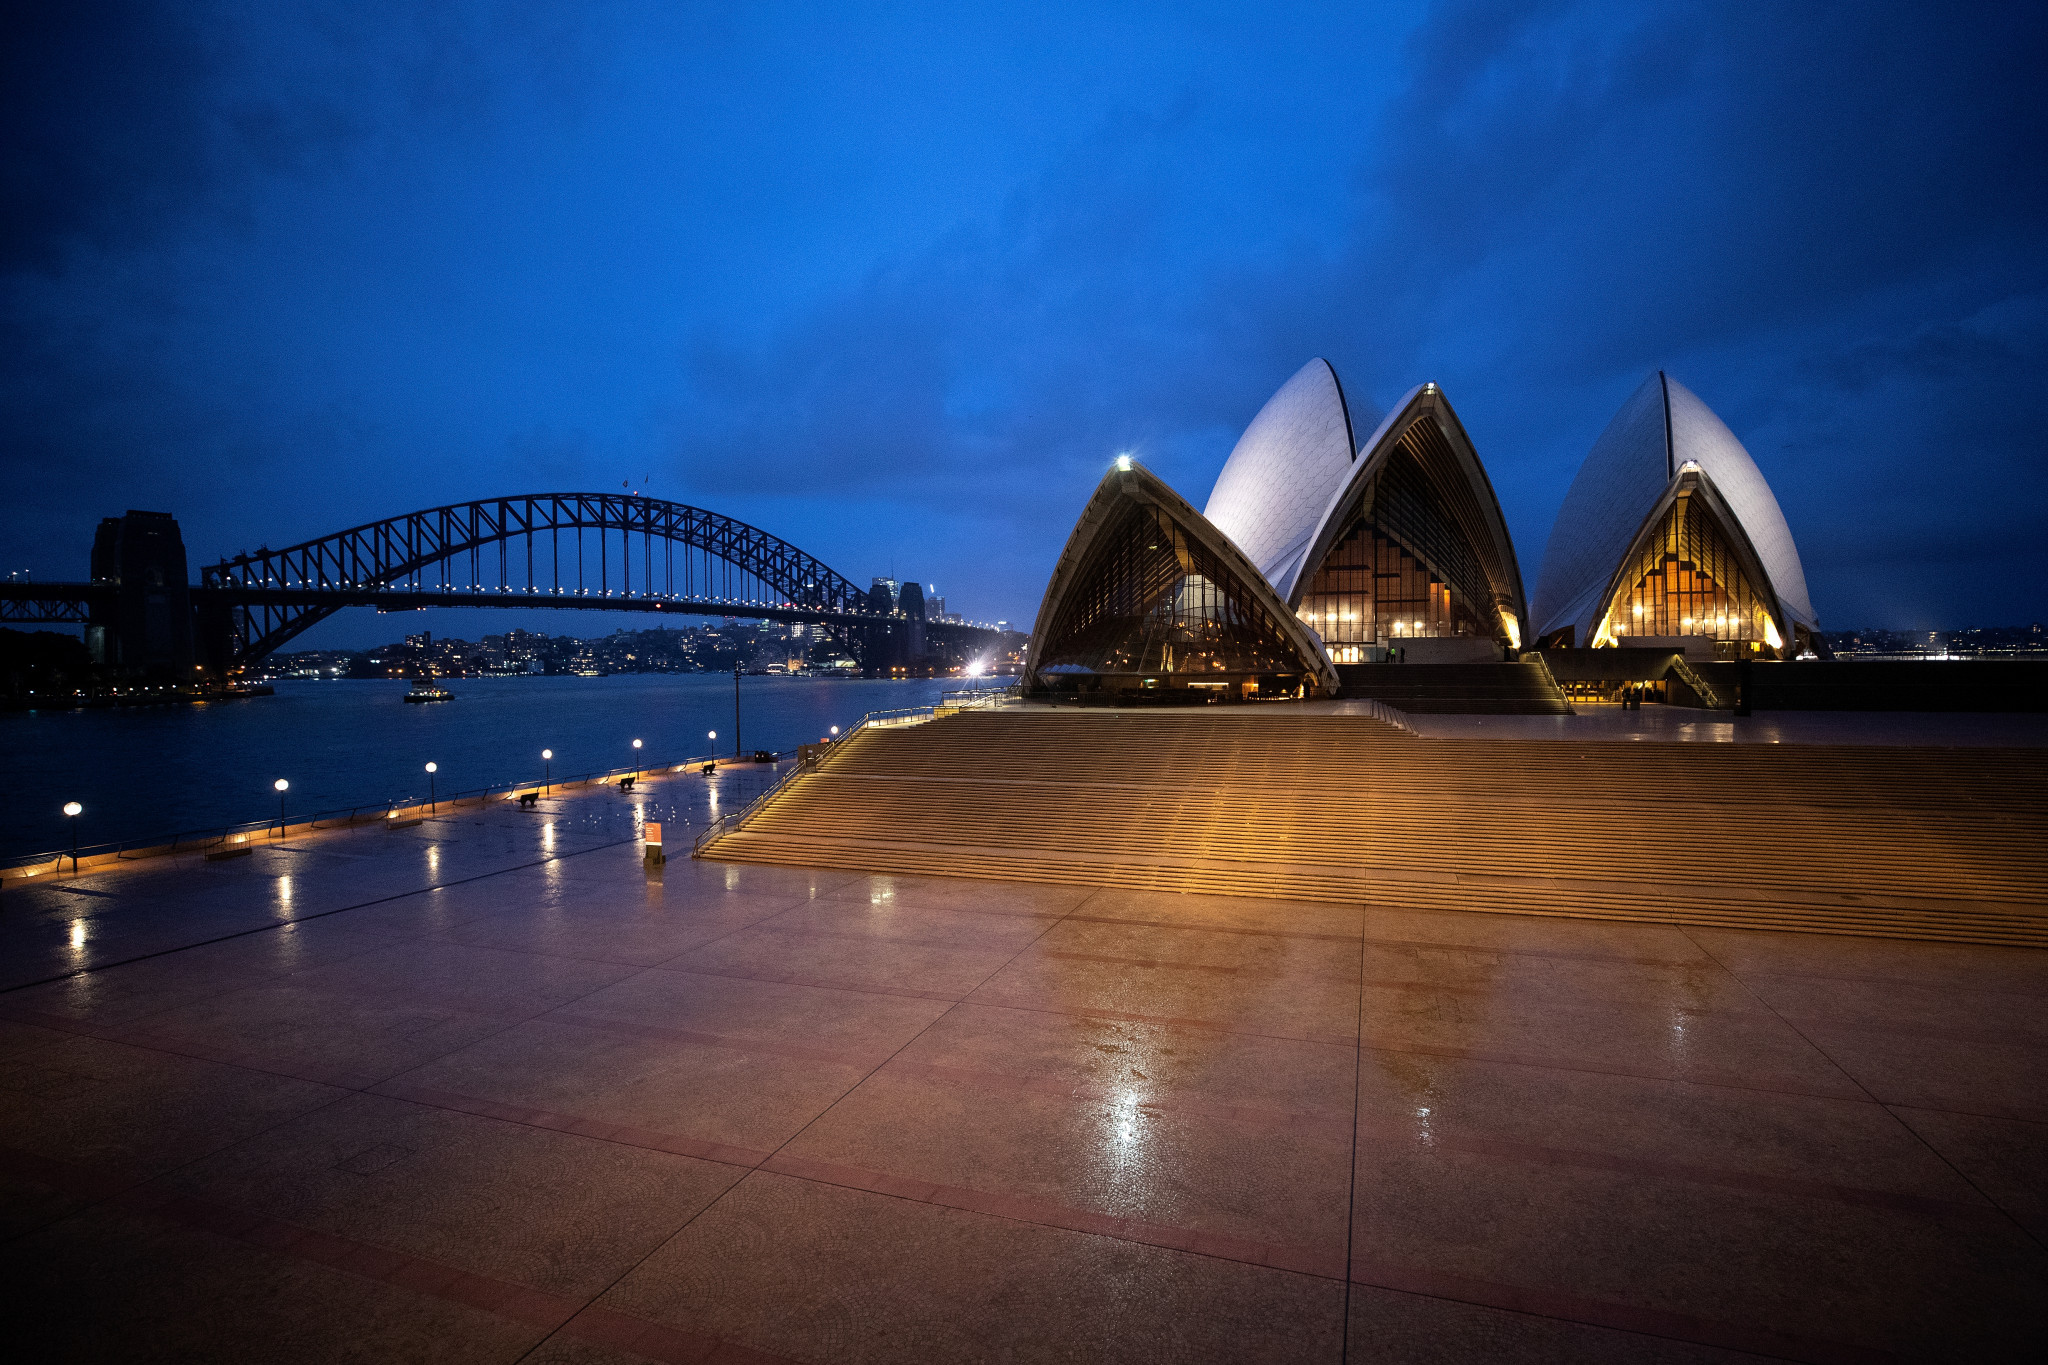 Sydney is set to host the Oceania Championships on December 19 and 20 ©Getty Images